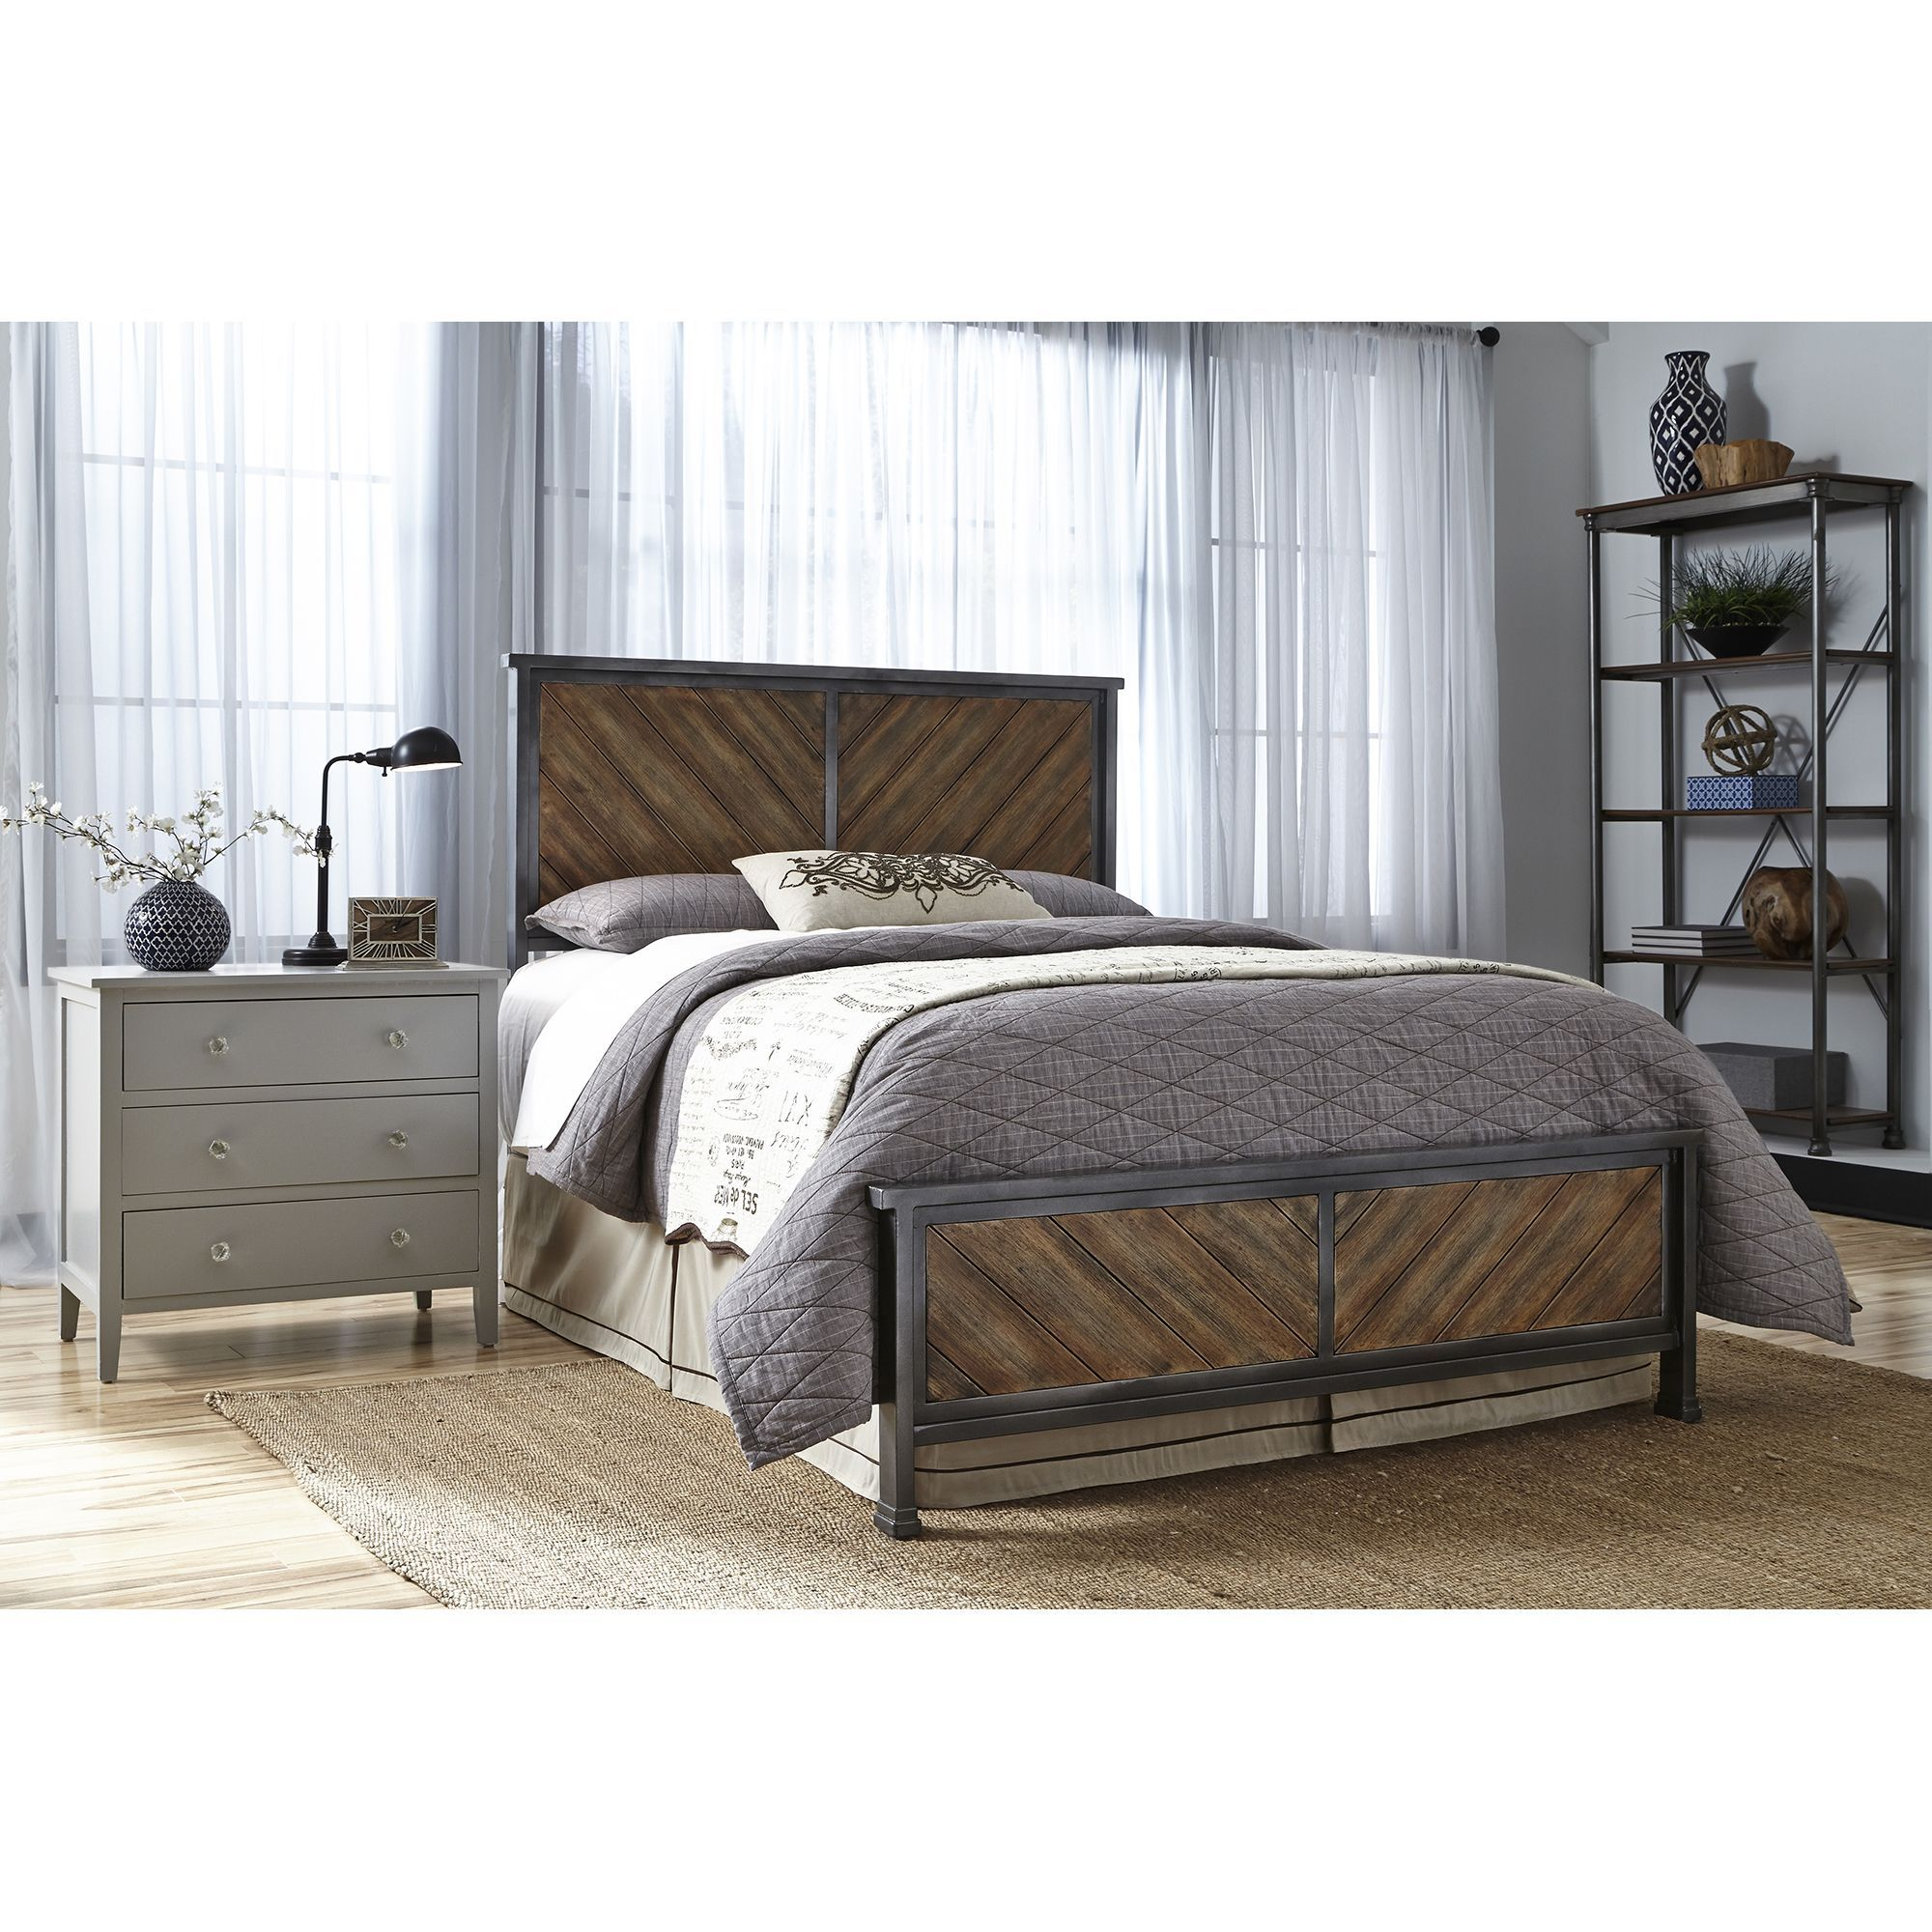 Leggett & Platt Braden Complete Bed with Metal Panels and